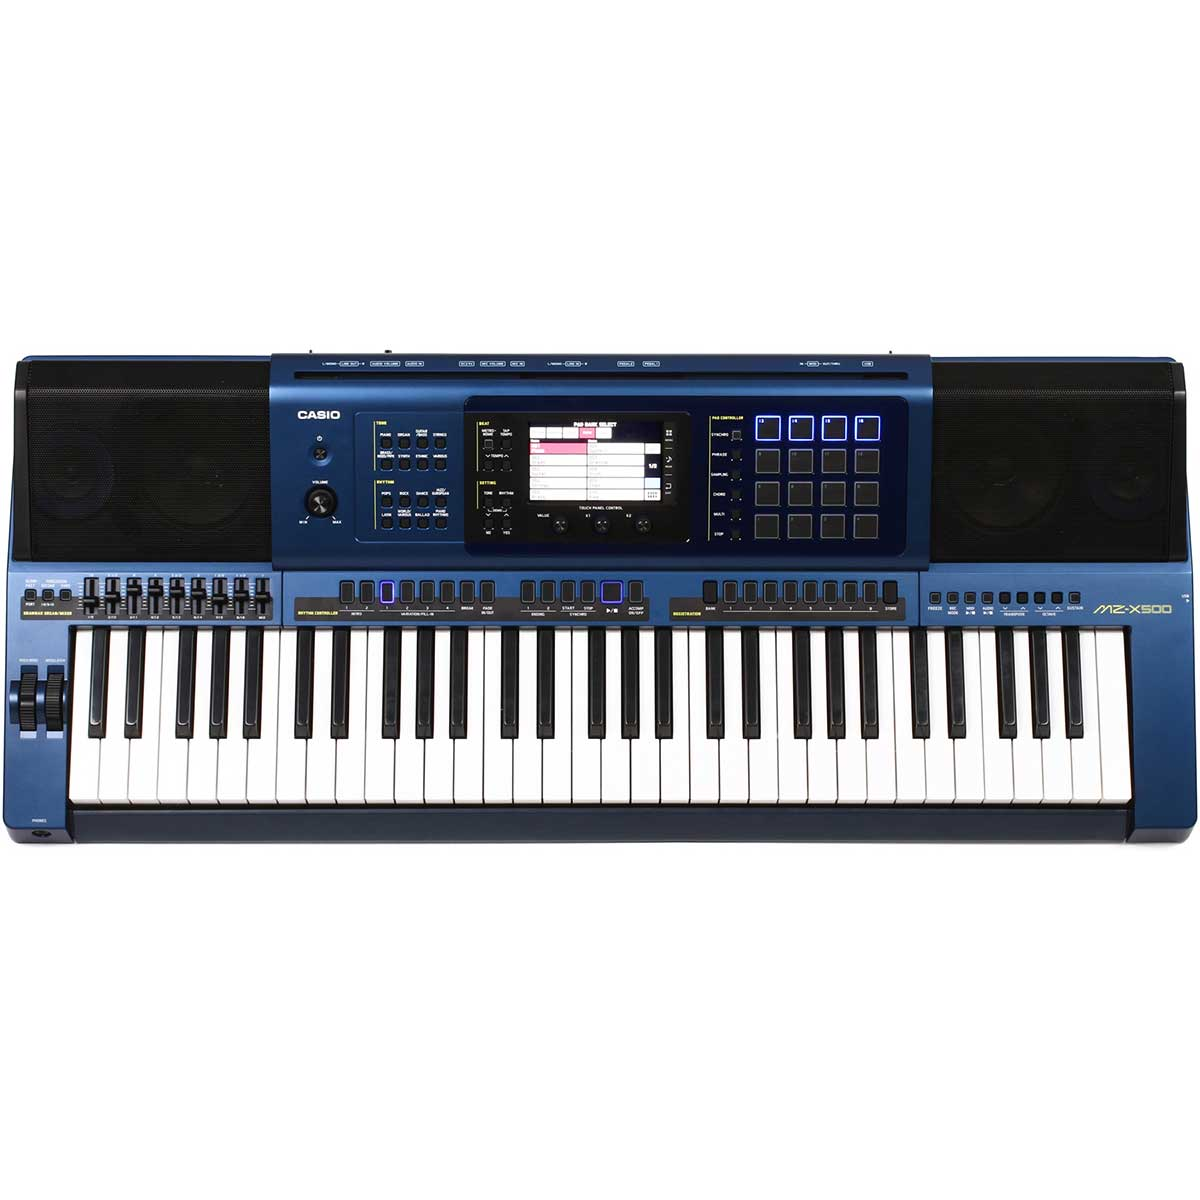 Casio MZ-X500 keyboard metallicblue